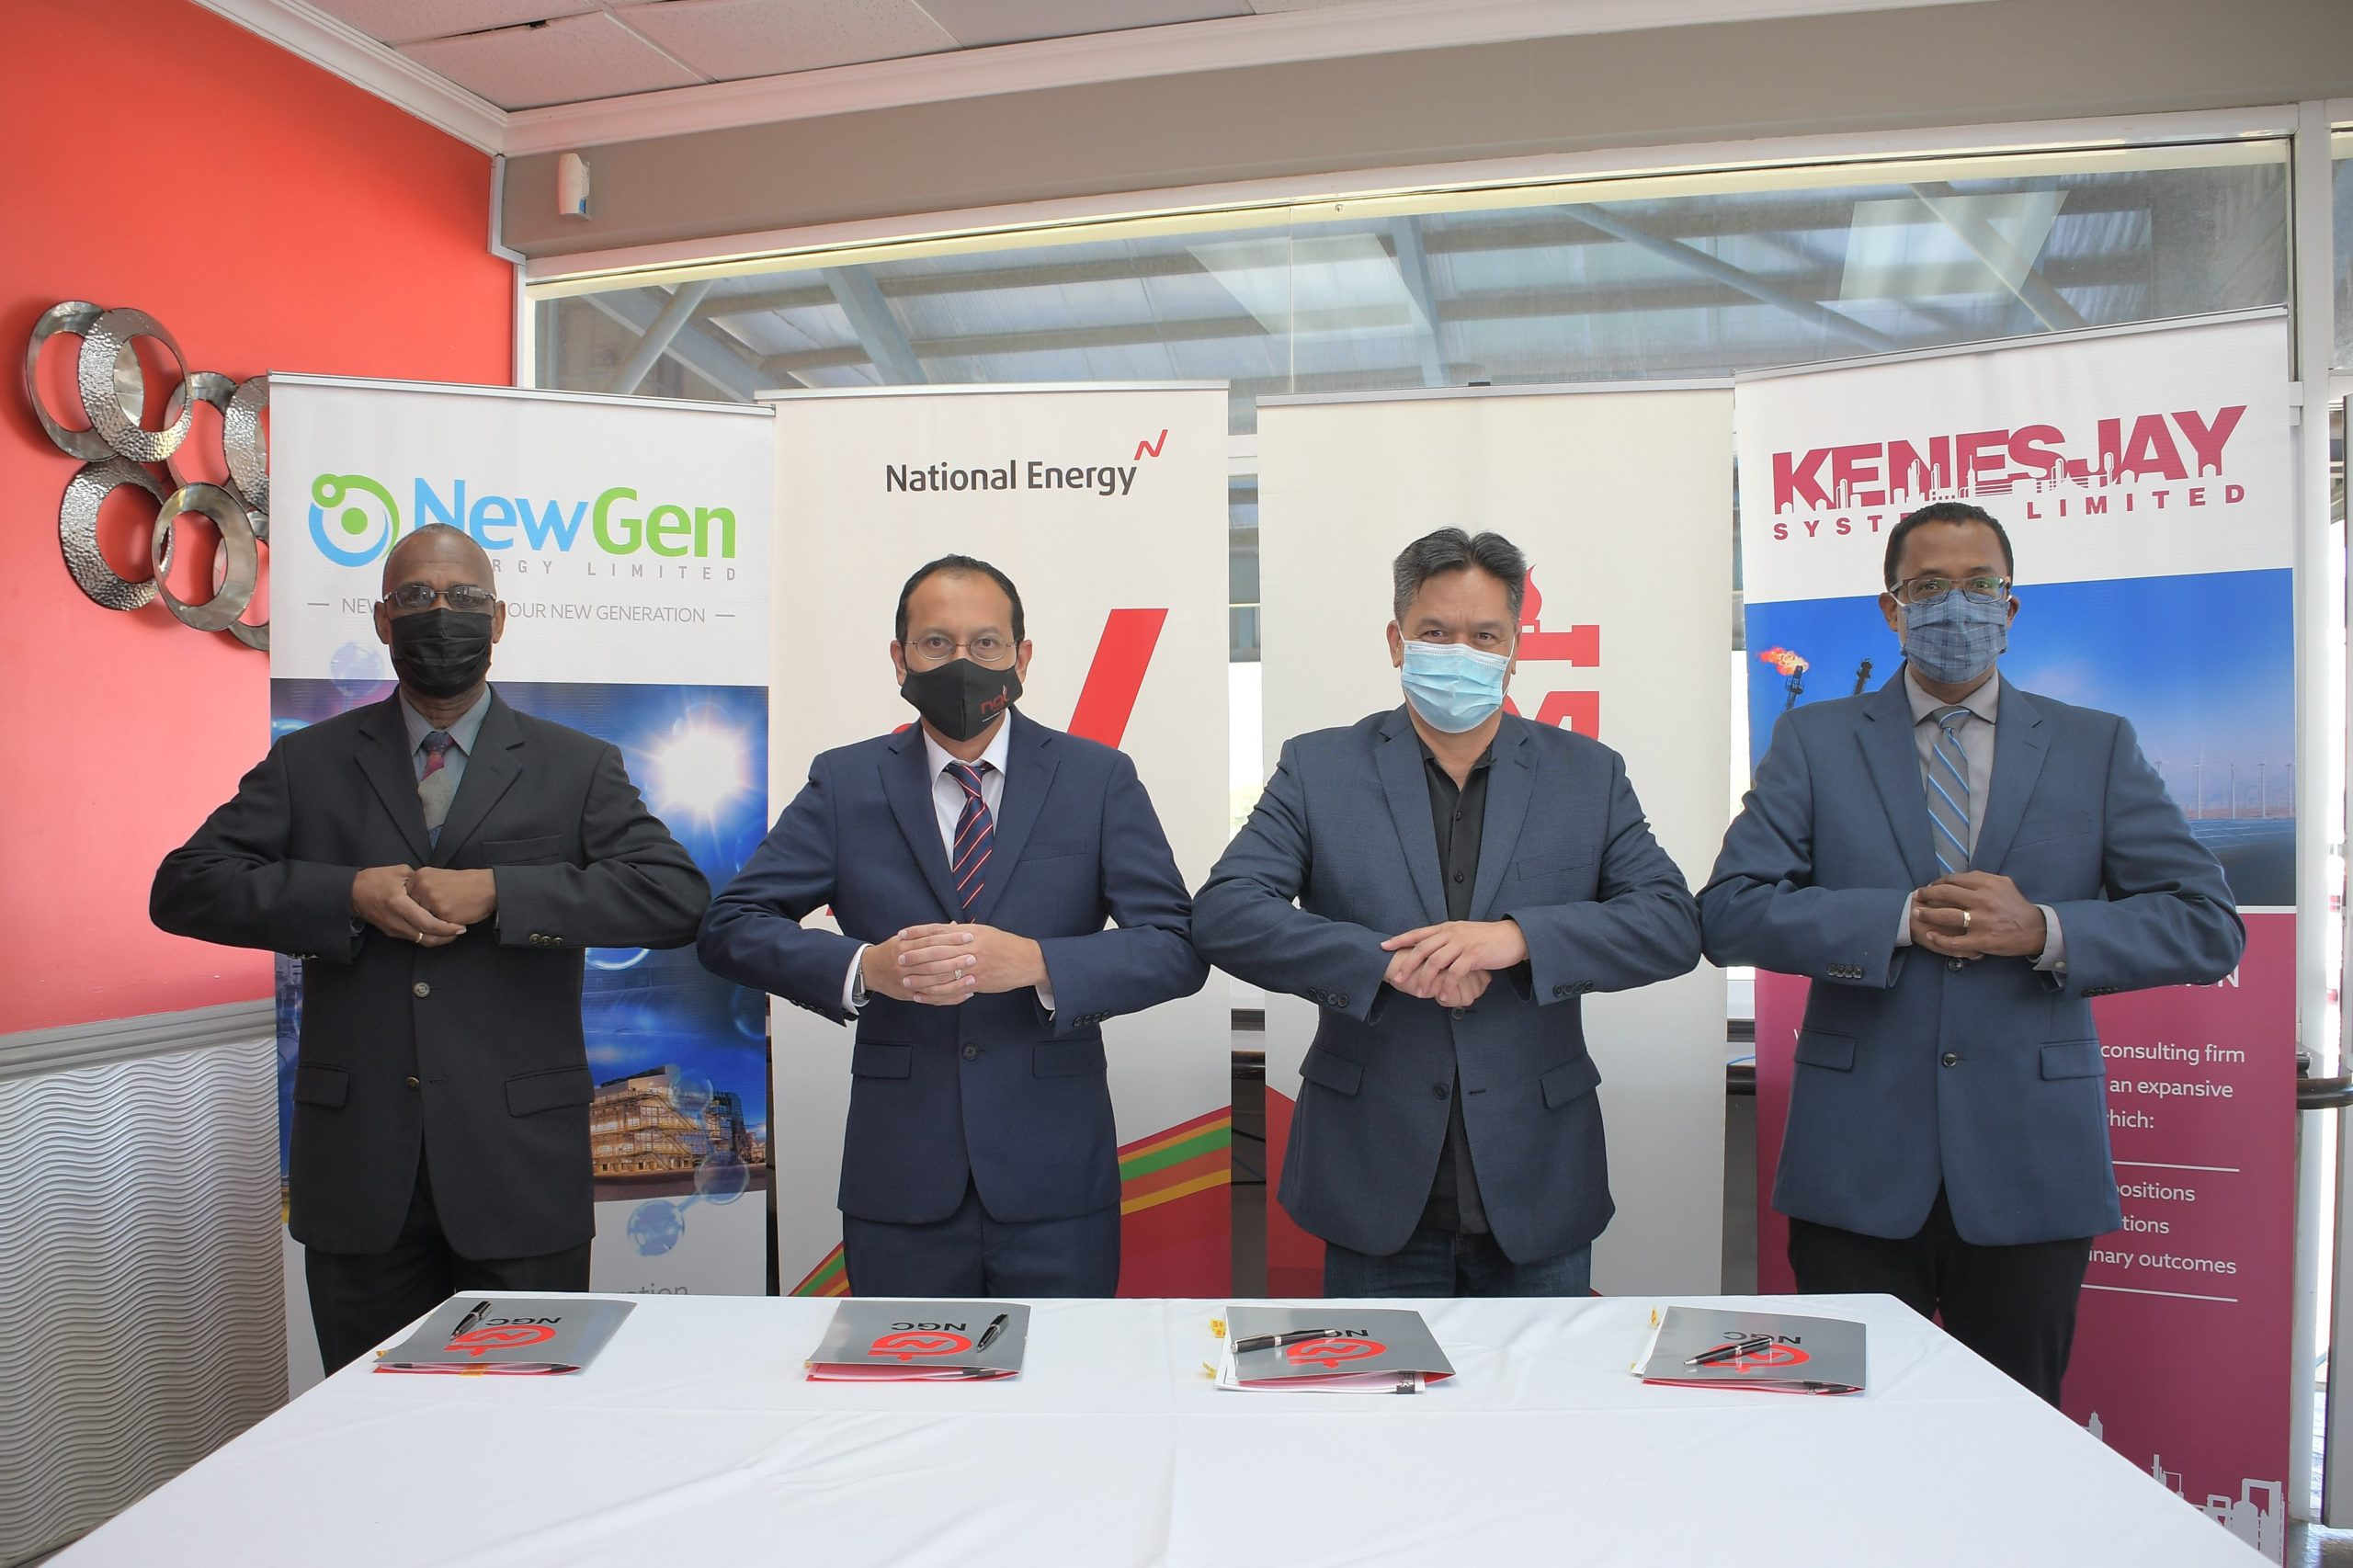 NGC SIGNS MOU WITH KENESJAY GREEN NEWGEN FOR CARBON NEUTRAL HYDROGEN scaled